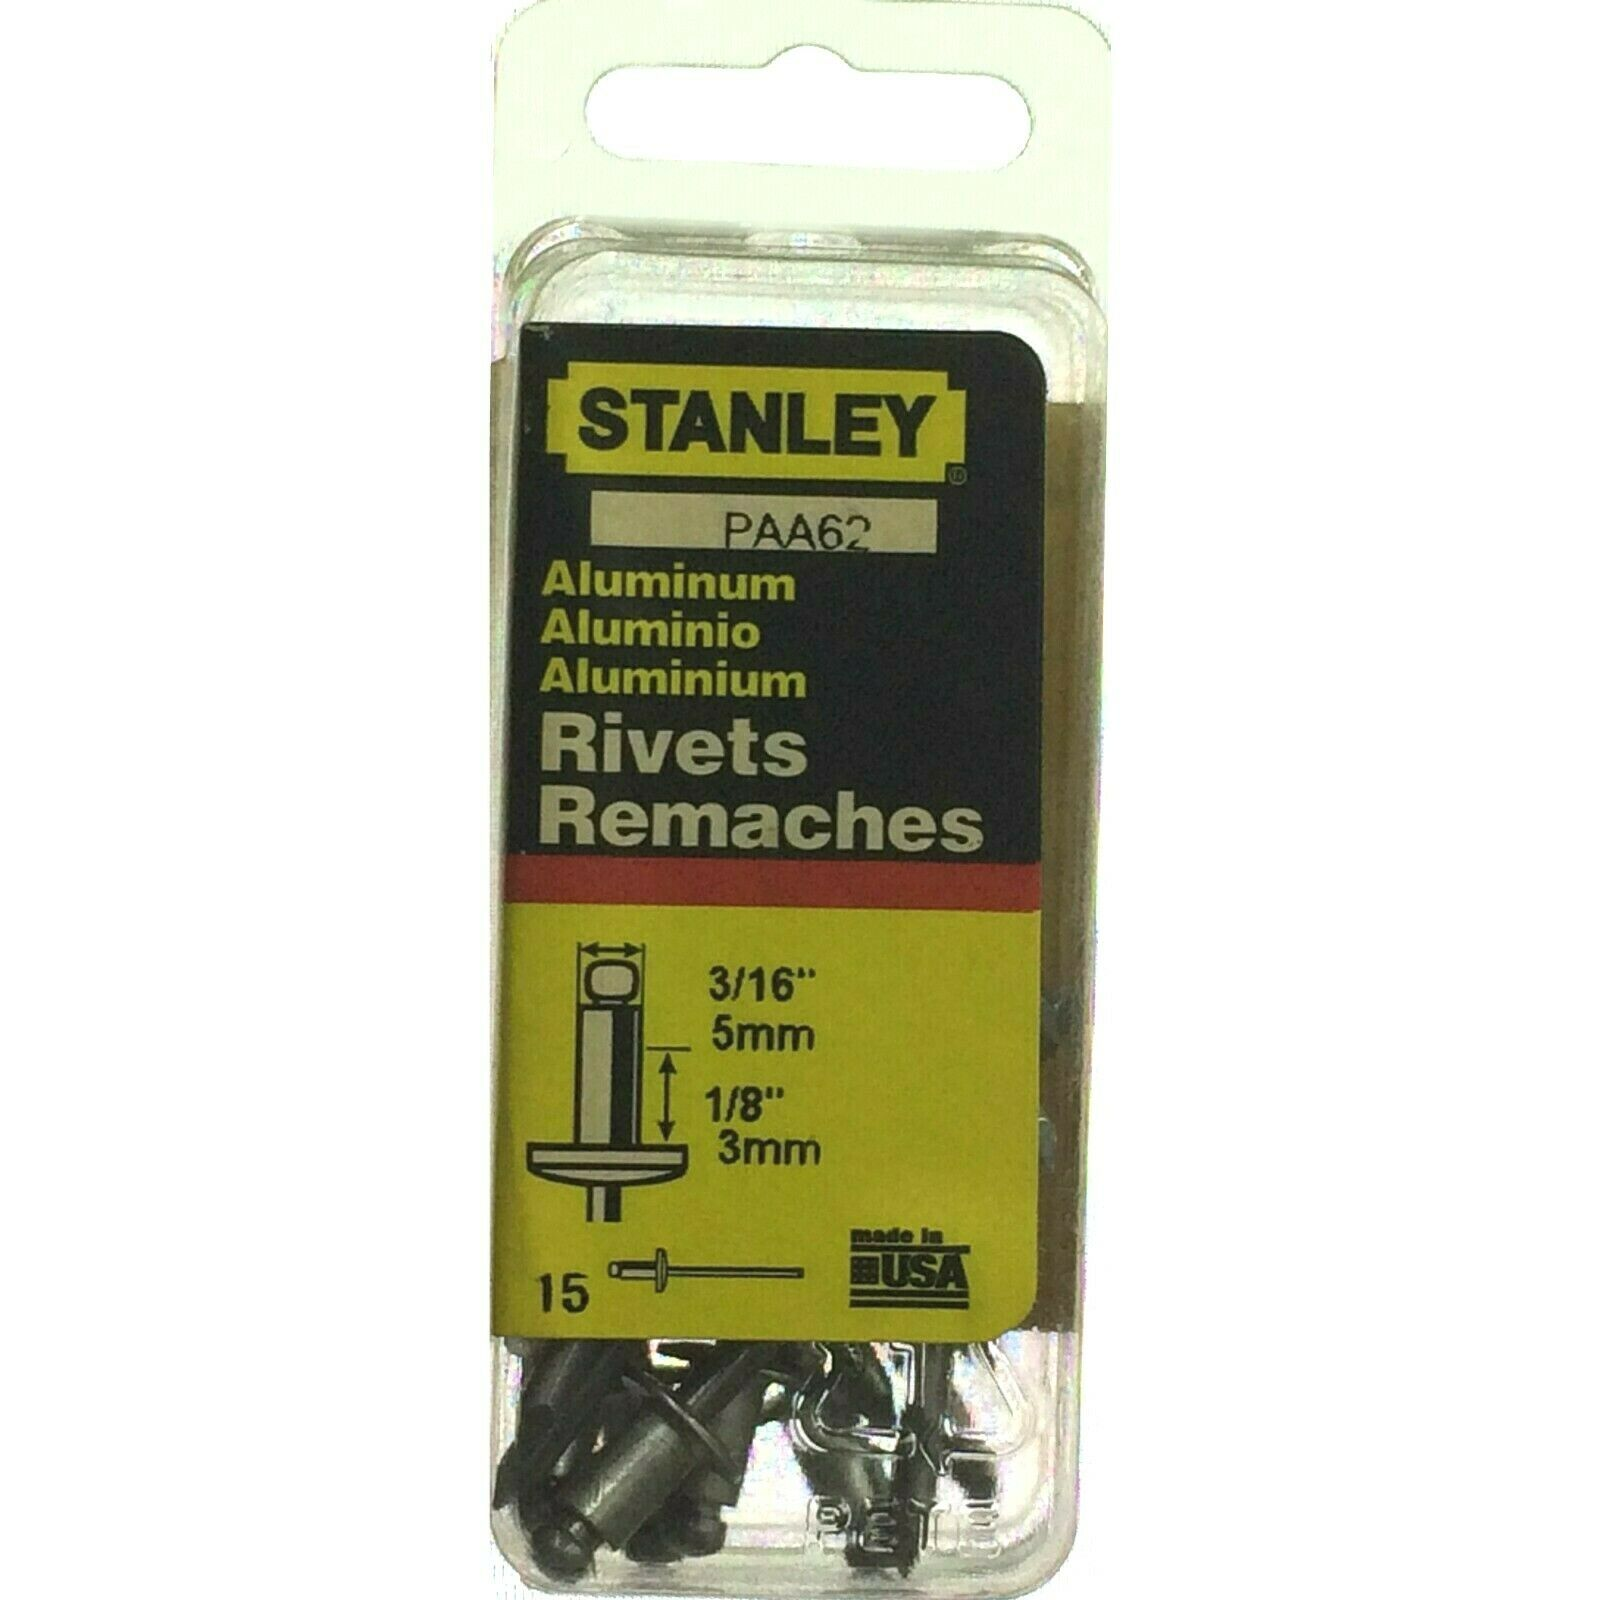 Assorted STANLEY Aluminum your Choice Stainless Steel Rivets